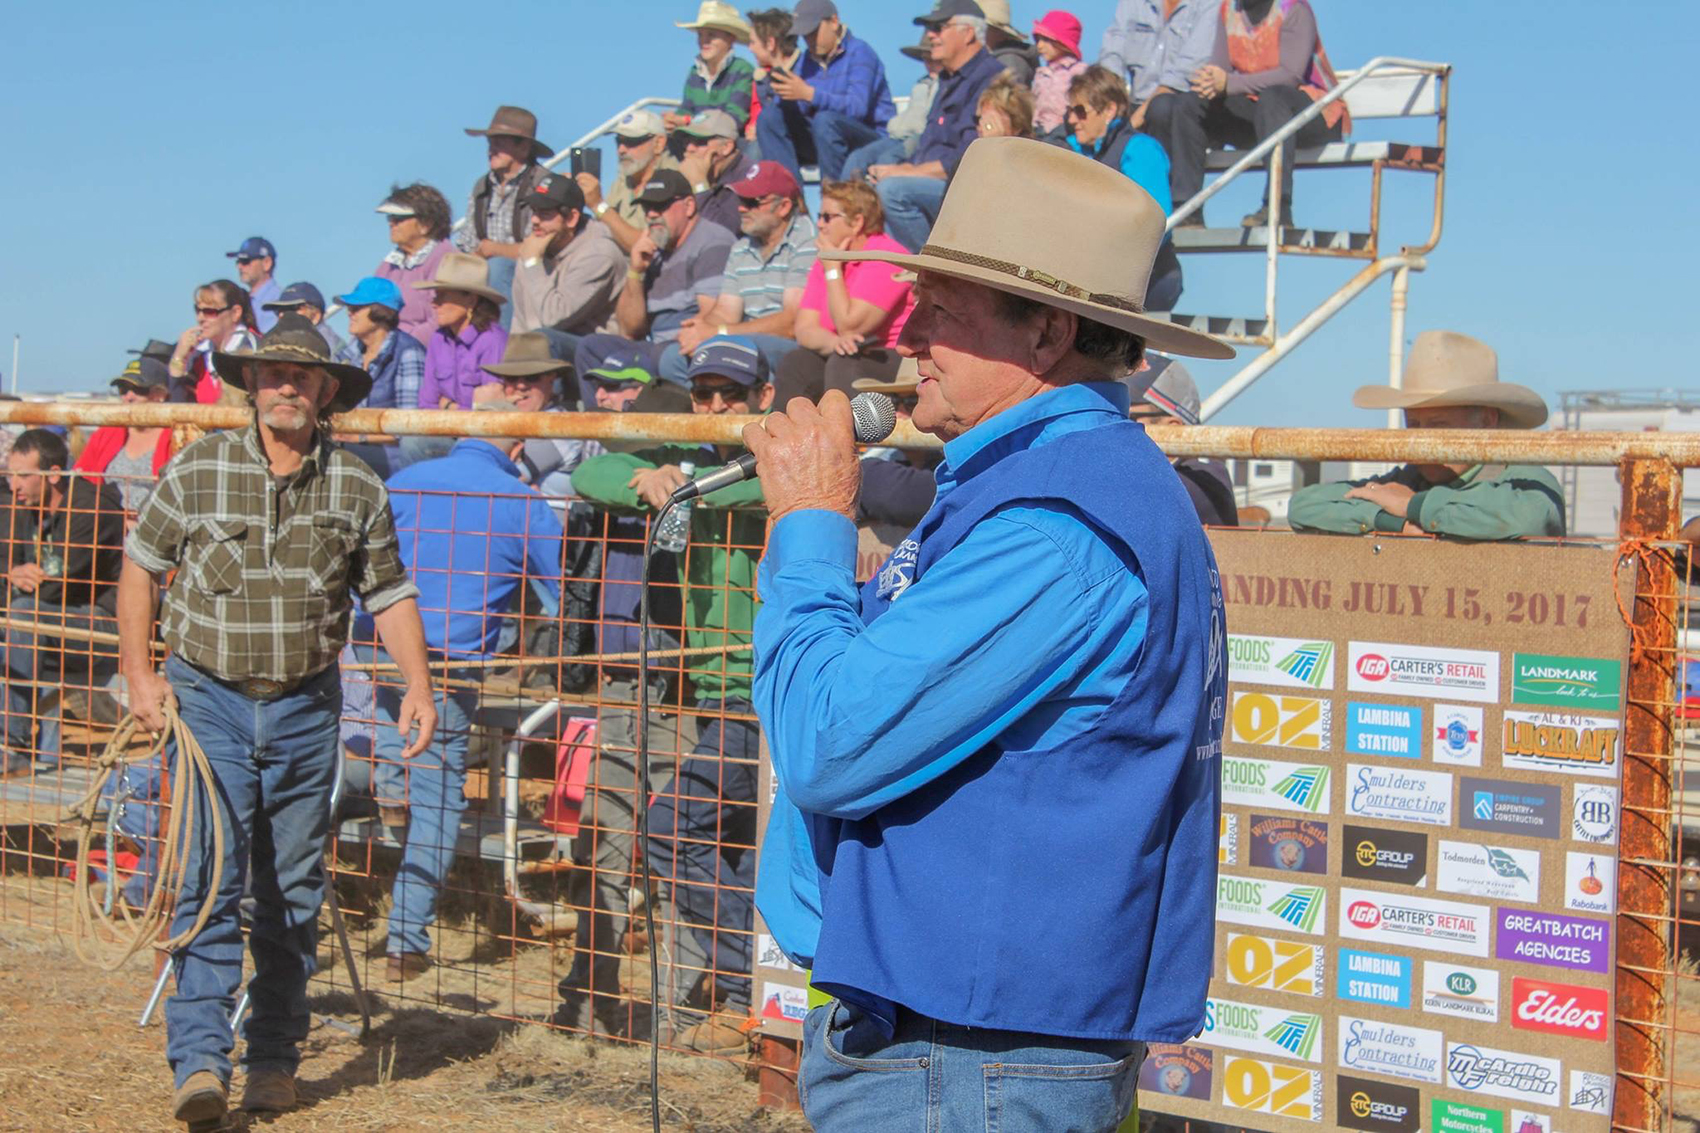 Wayne Williams commentating at the Oodnadatta Bronco Branding